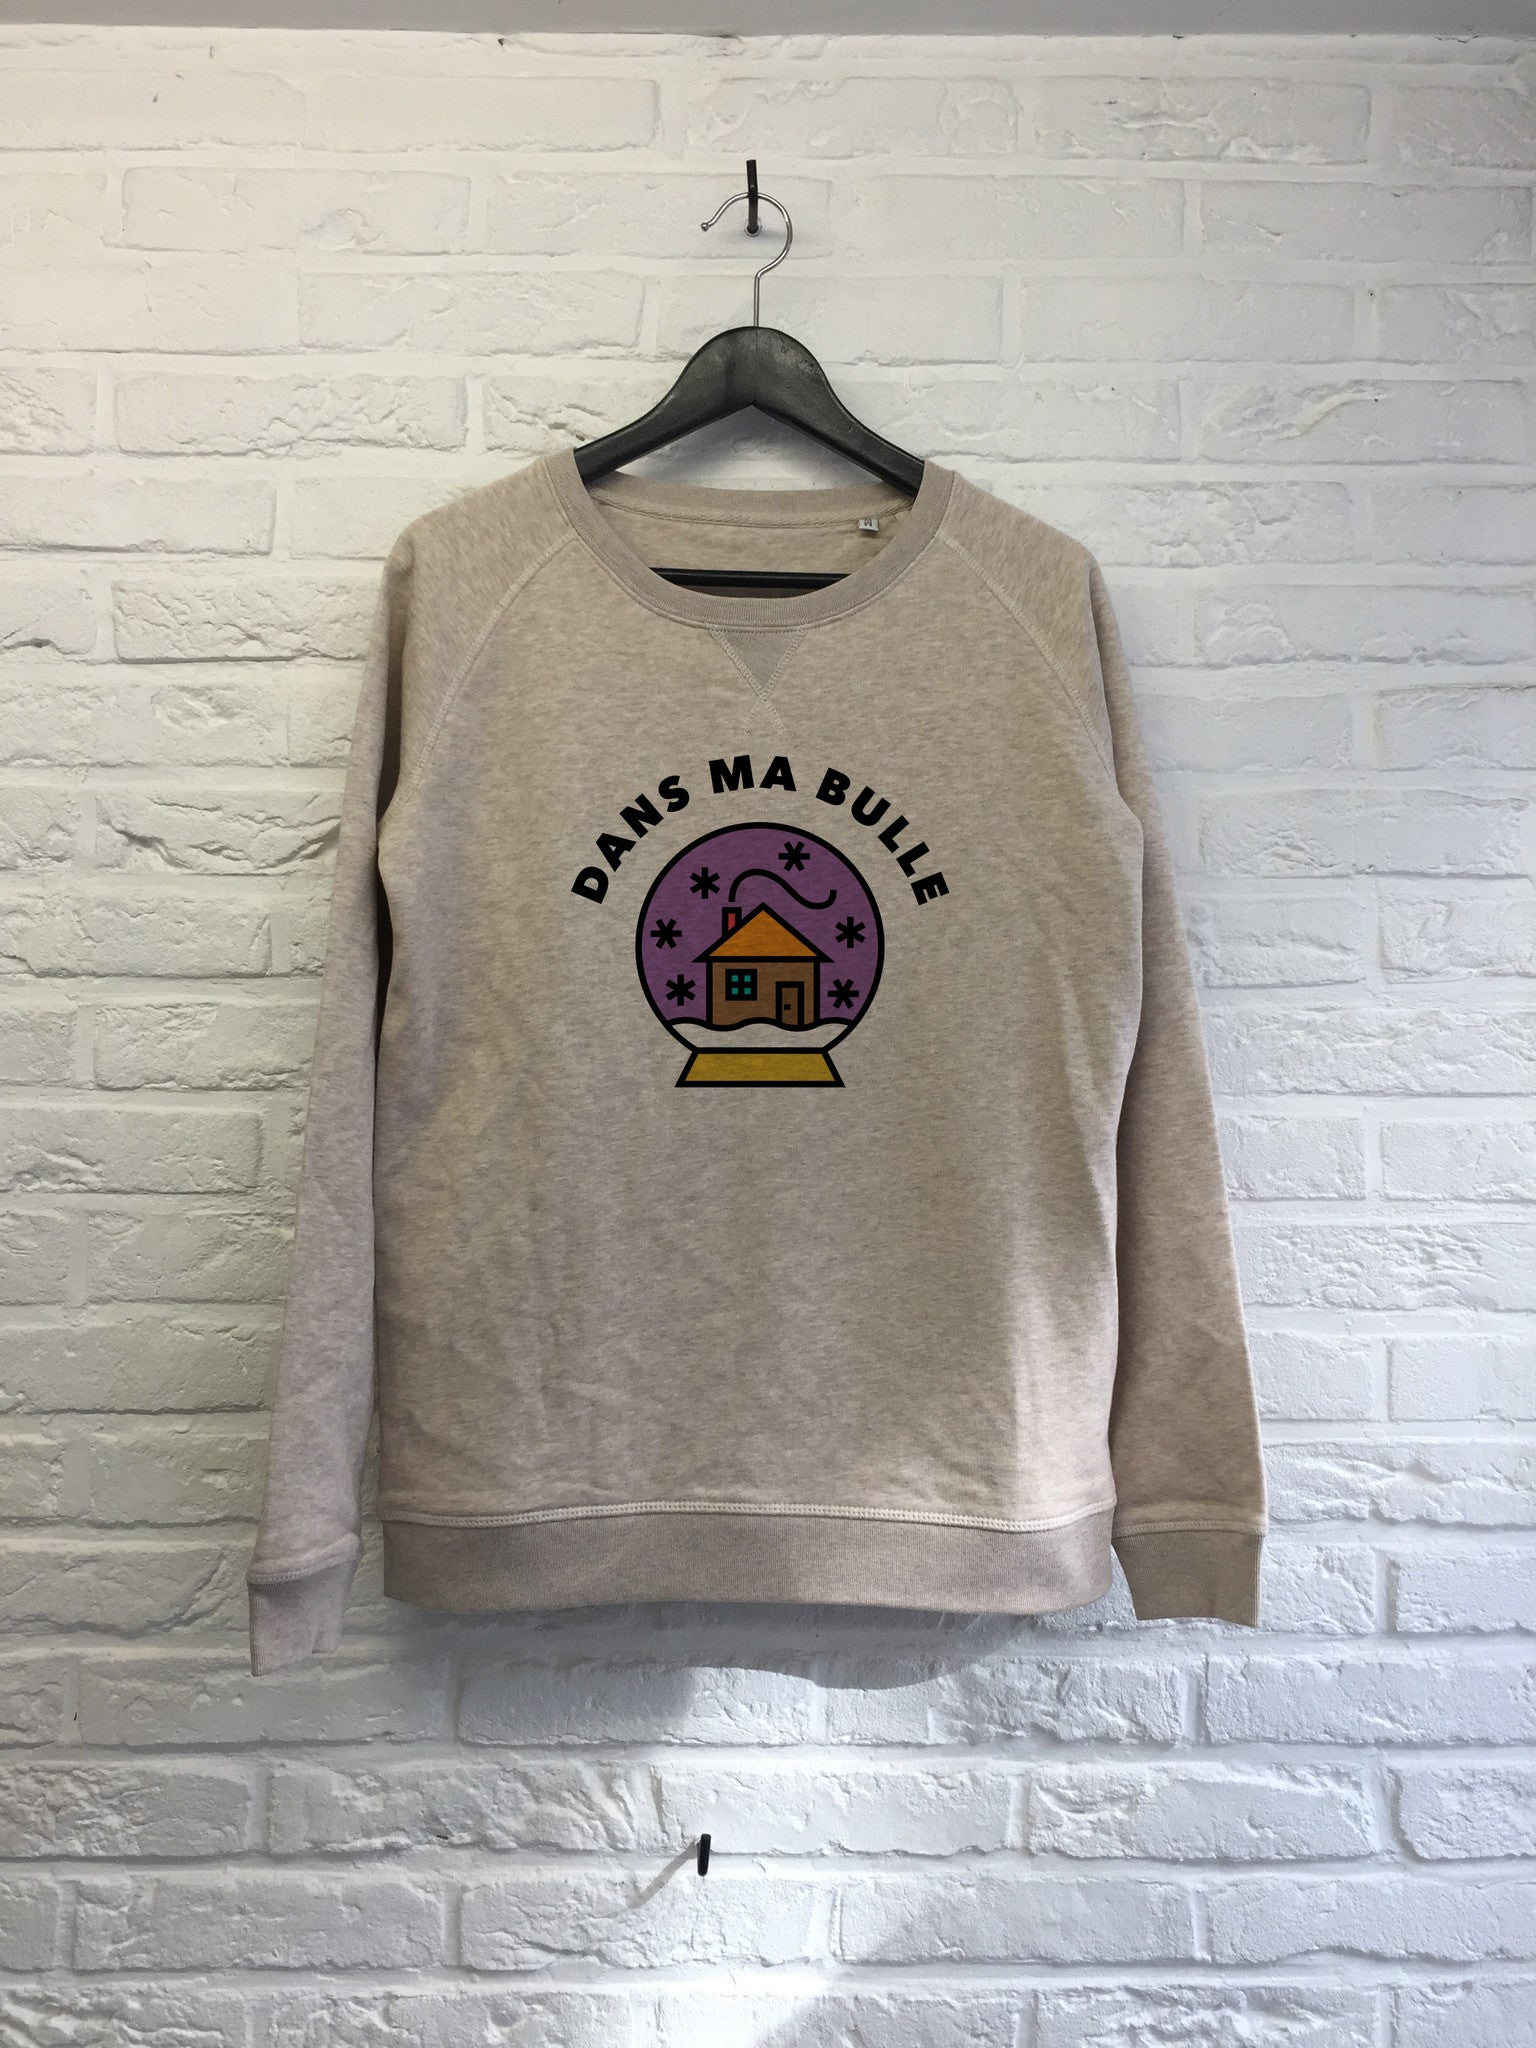 Dans ma bulle - Sweat - Femme-Sweat shirts-Atelier Amelot